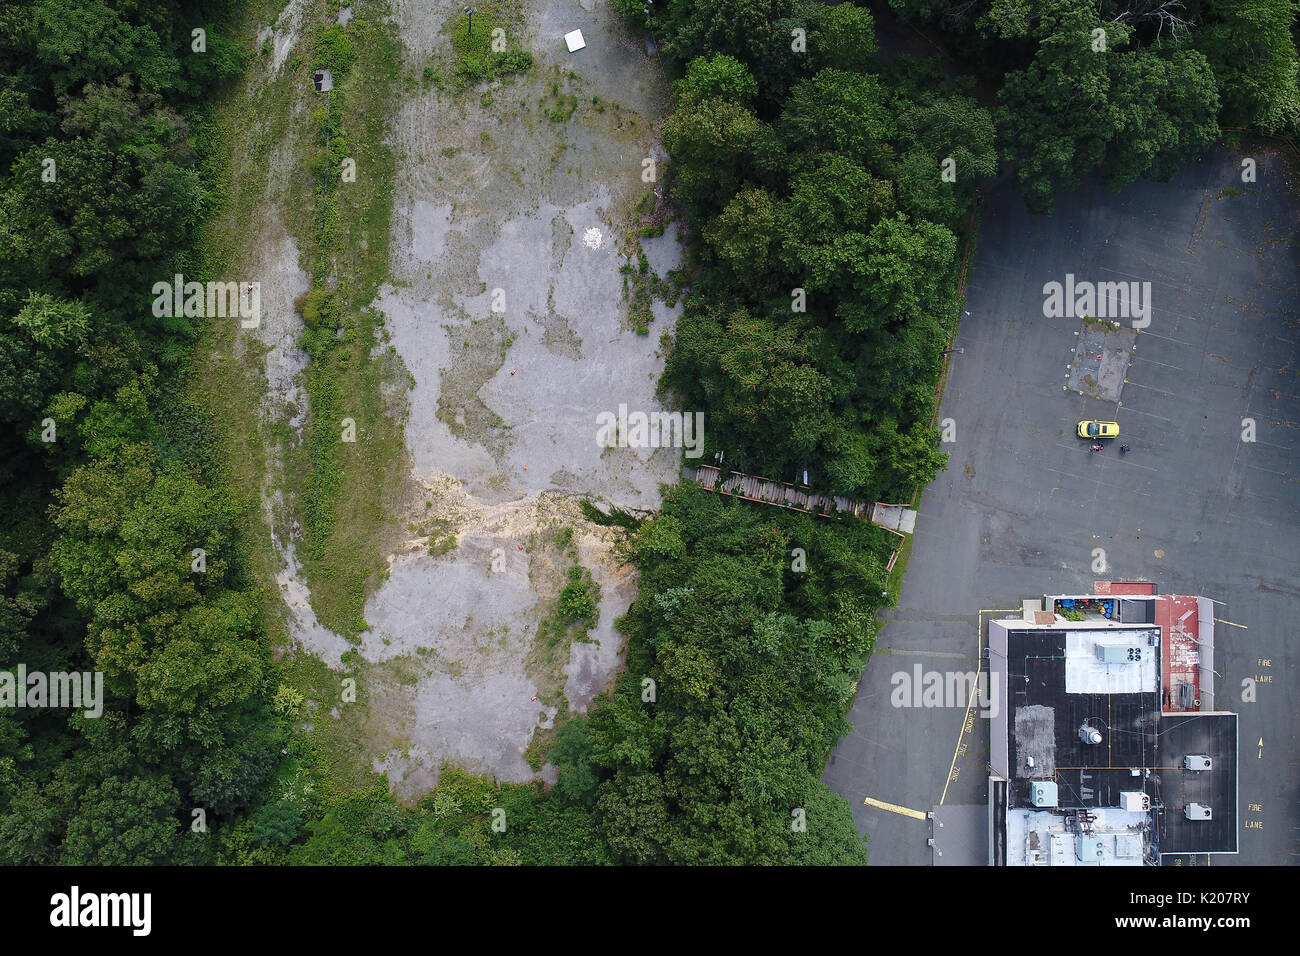 Aerial view of Old broken down stairway from unused old parking lot and closed club - Stock Image